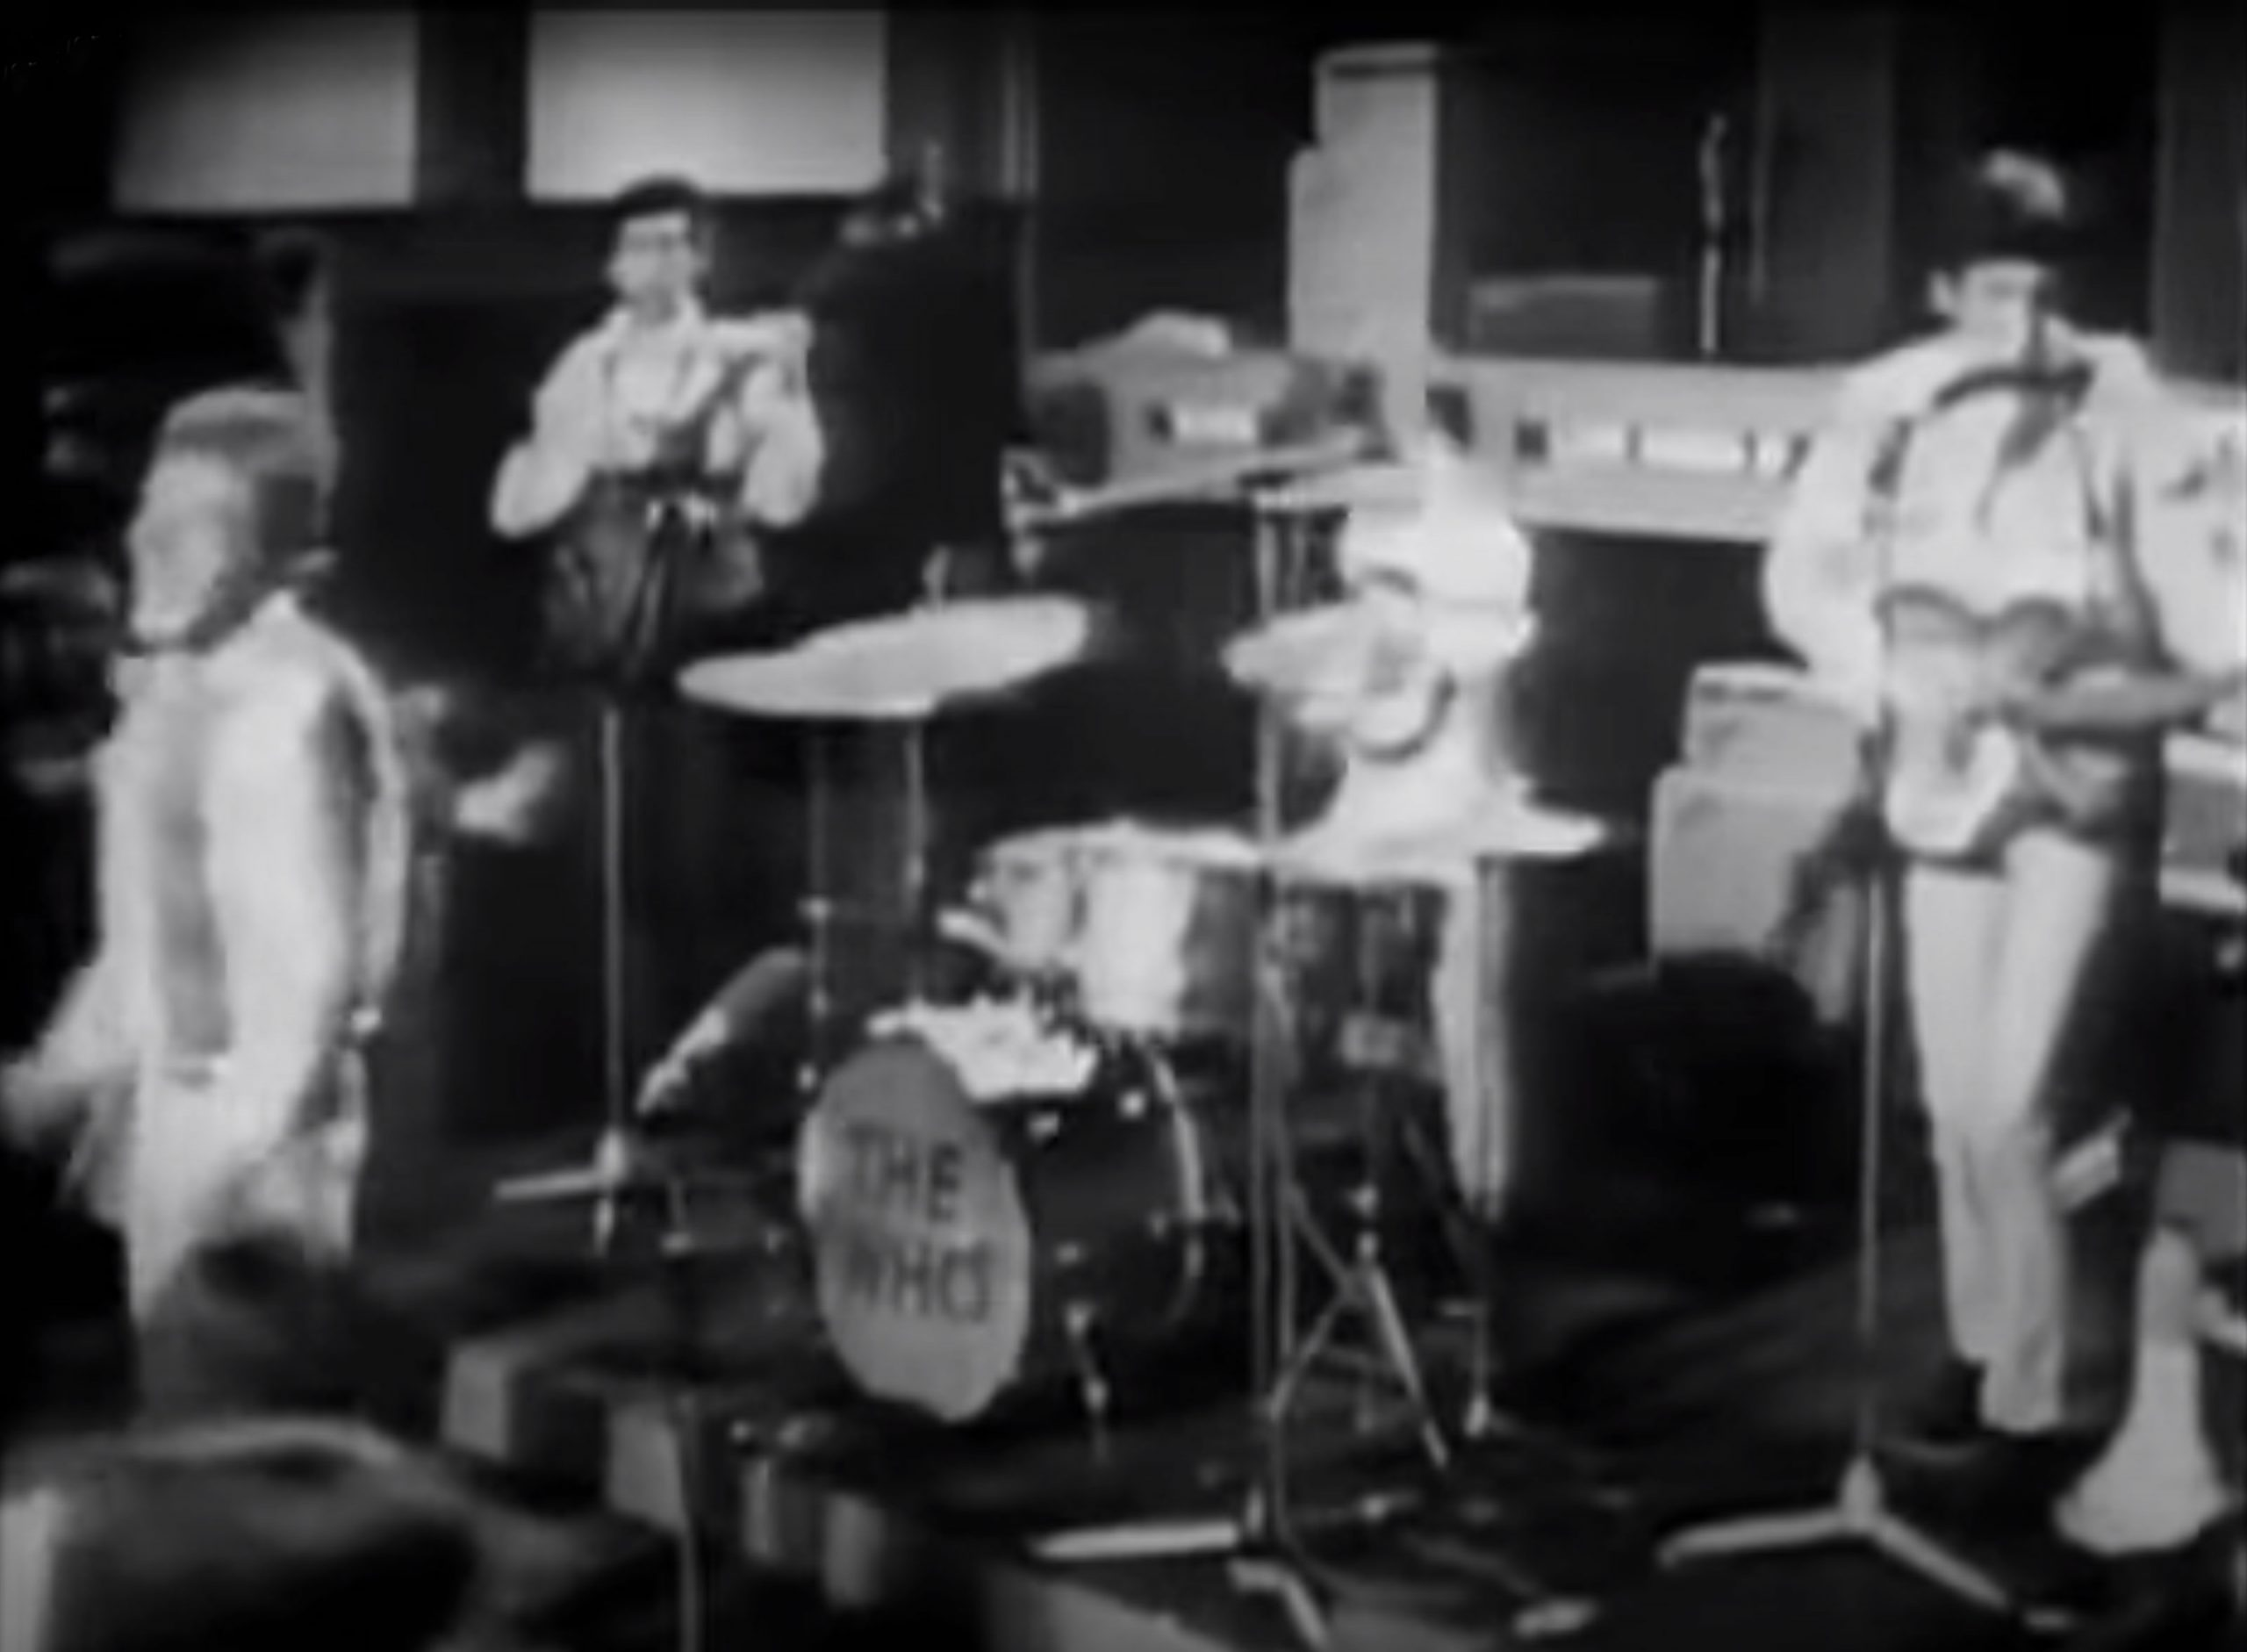 The Who: 'Anyway, Anyhow, Anywhere'